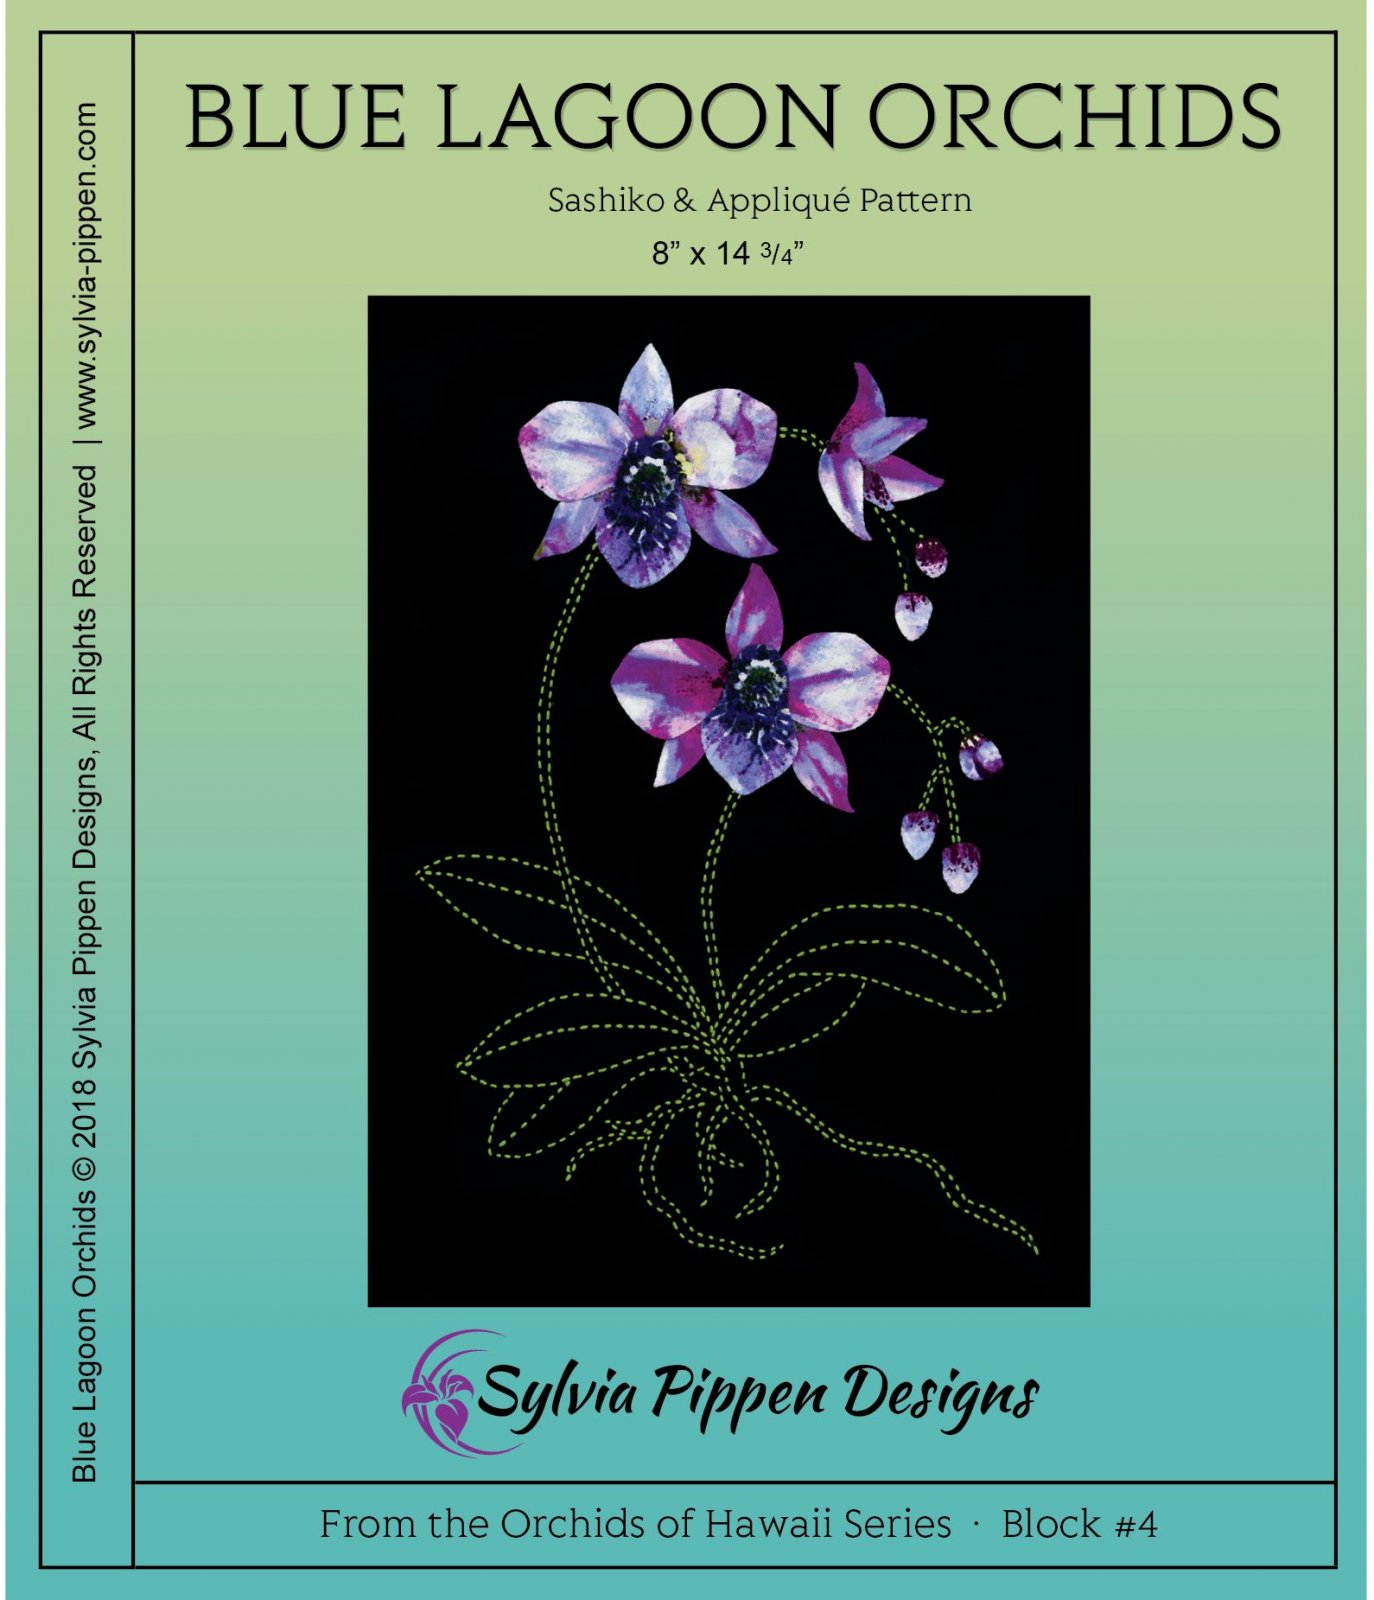 Blue lagoon Orchids Sashiko & Applique Pattern from Orchids of Hawaii series